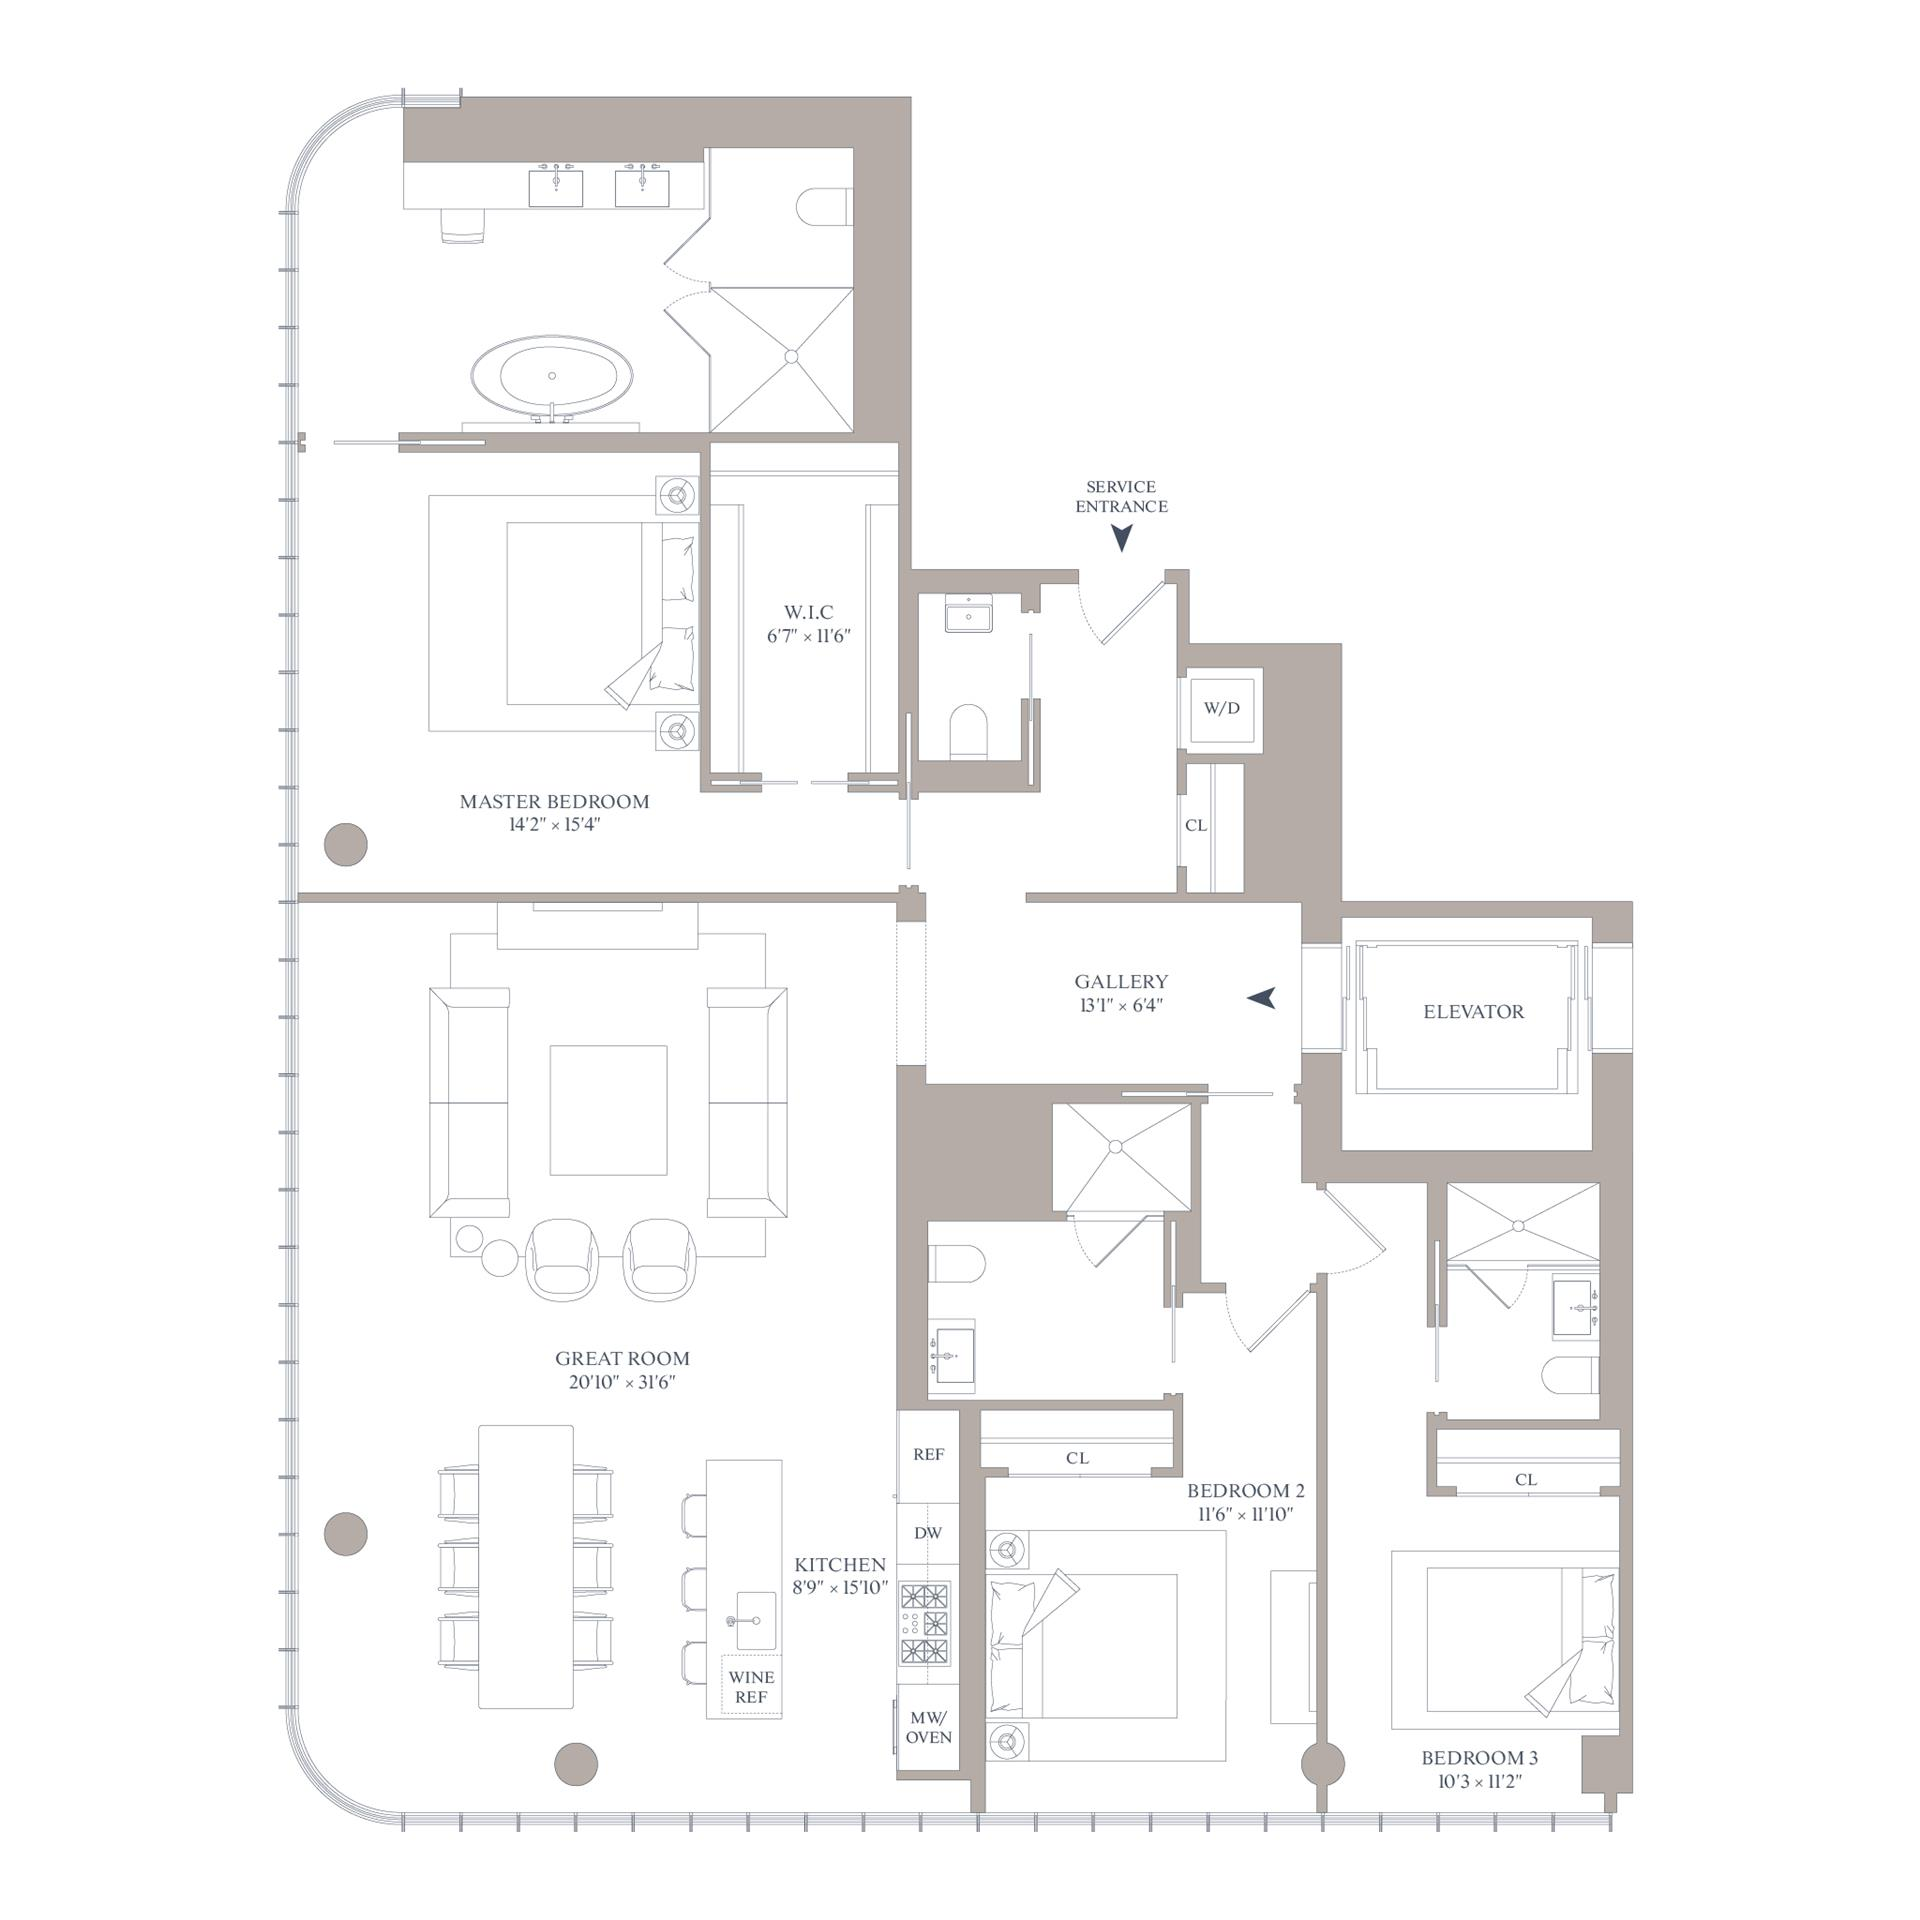 Floor plan of 565 Broome St, S25A - SoHo - Nolita, New York